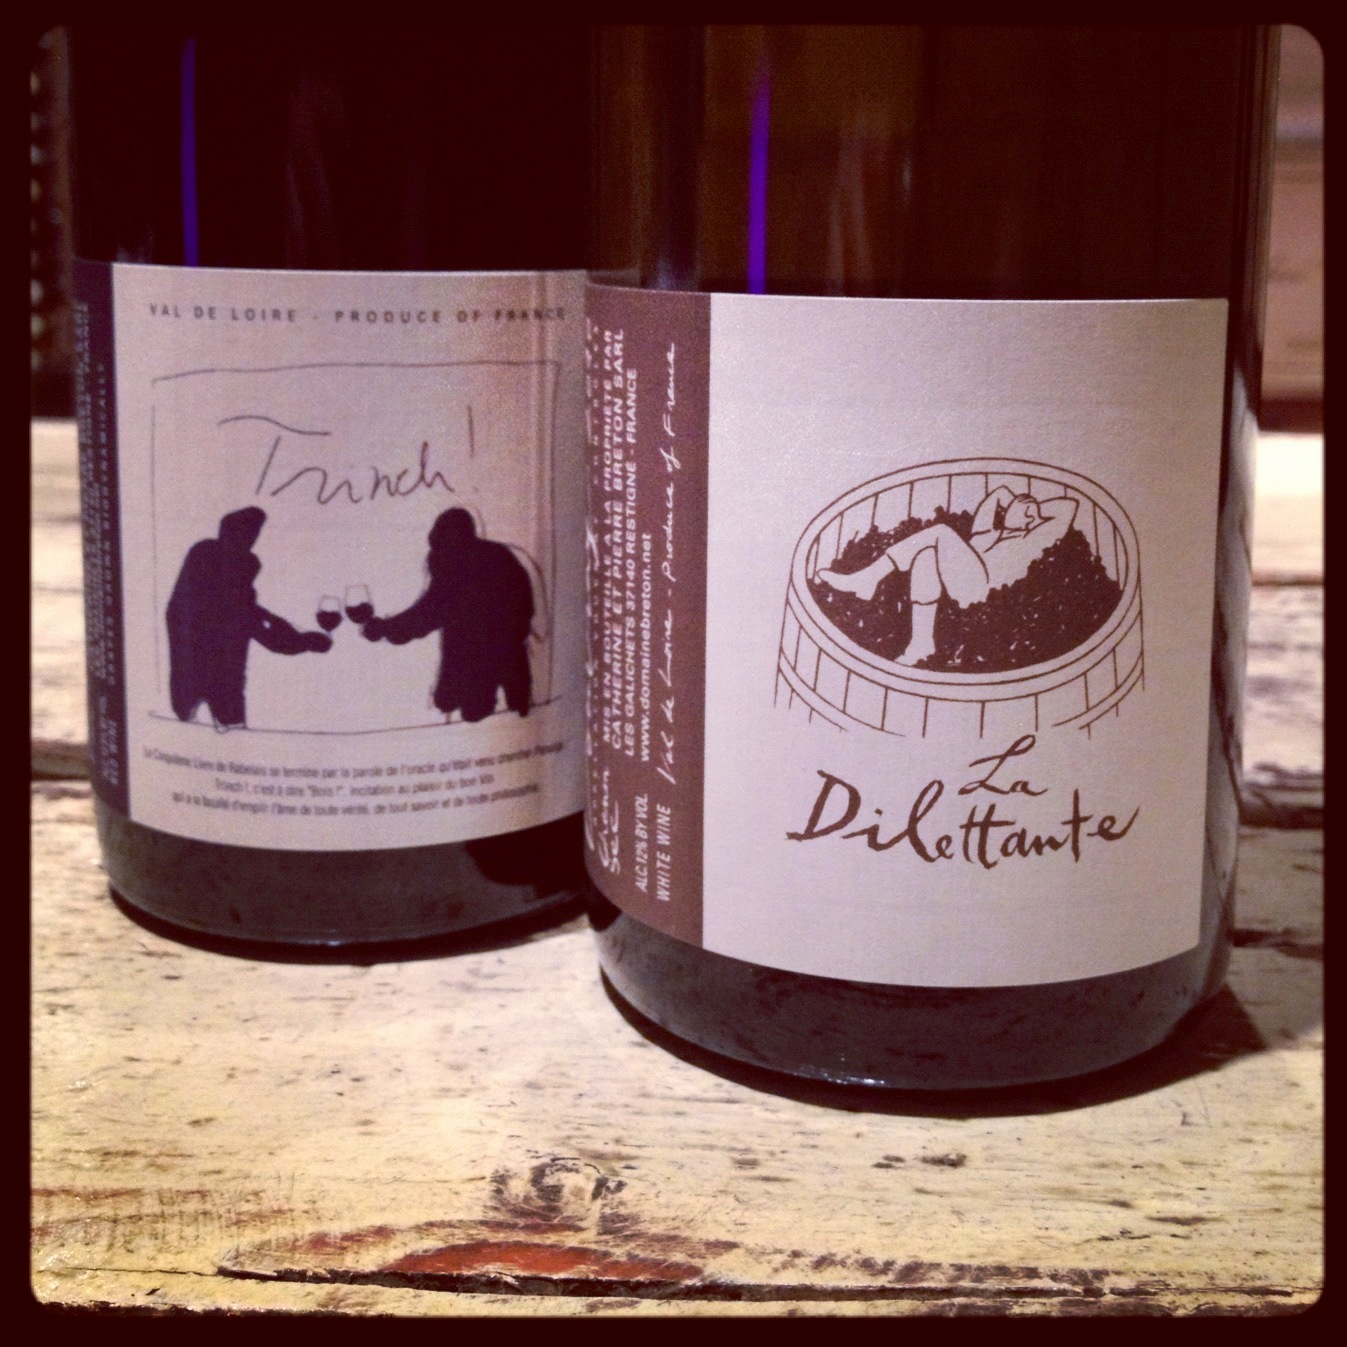 Free Tasting of Domaine Breton Wines: Vouvray La Dilettante and Bourgeuil Trinch